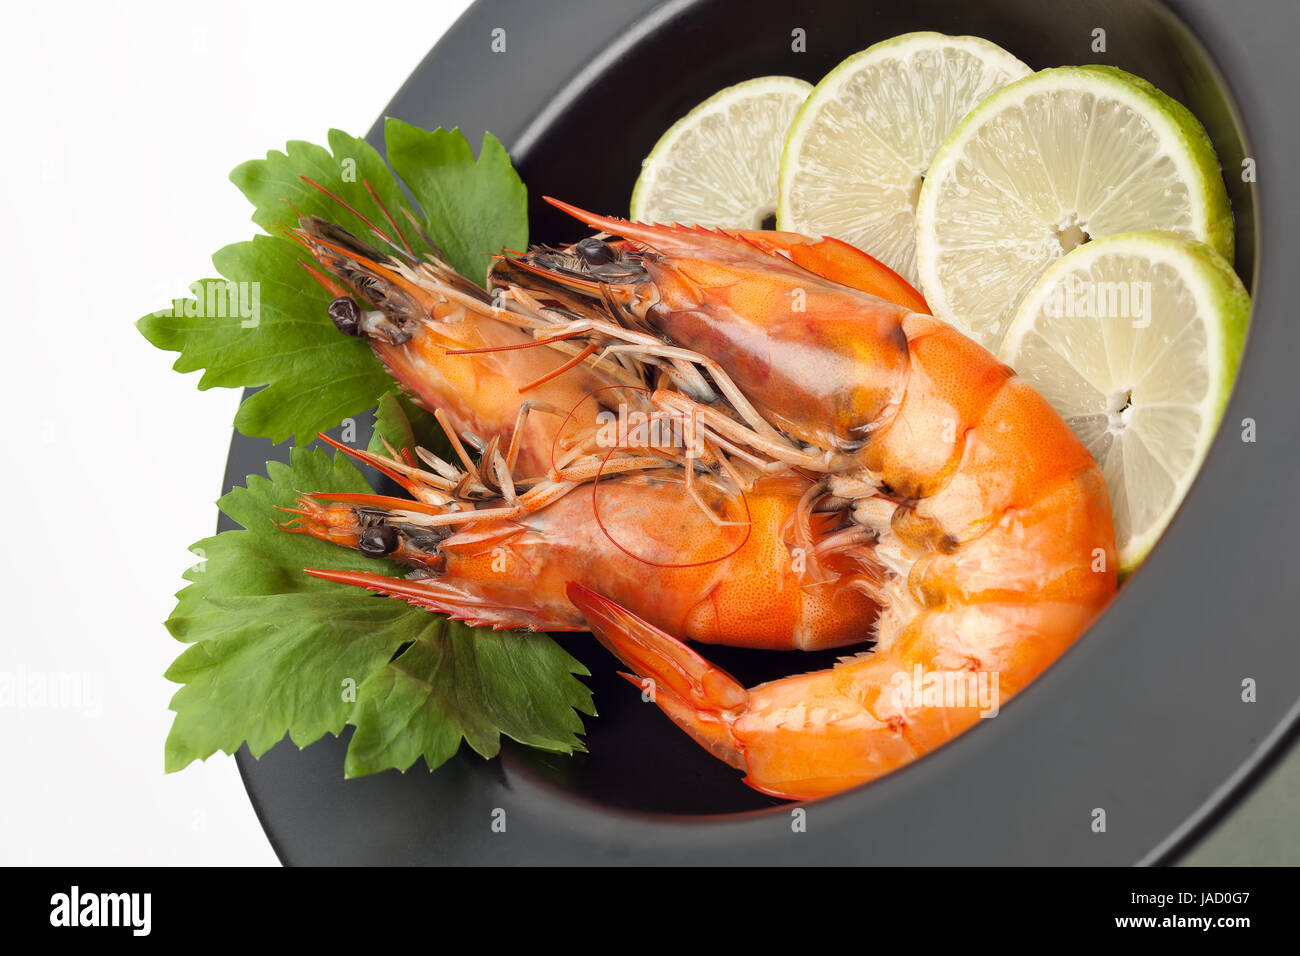 Grilled shrimp with lime on black plate isolated on white background - Stock Image